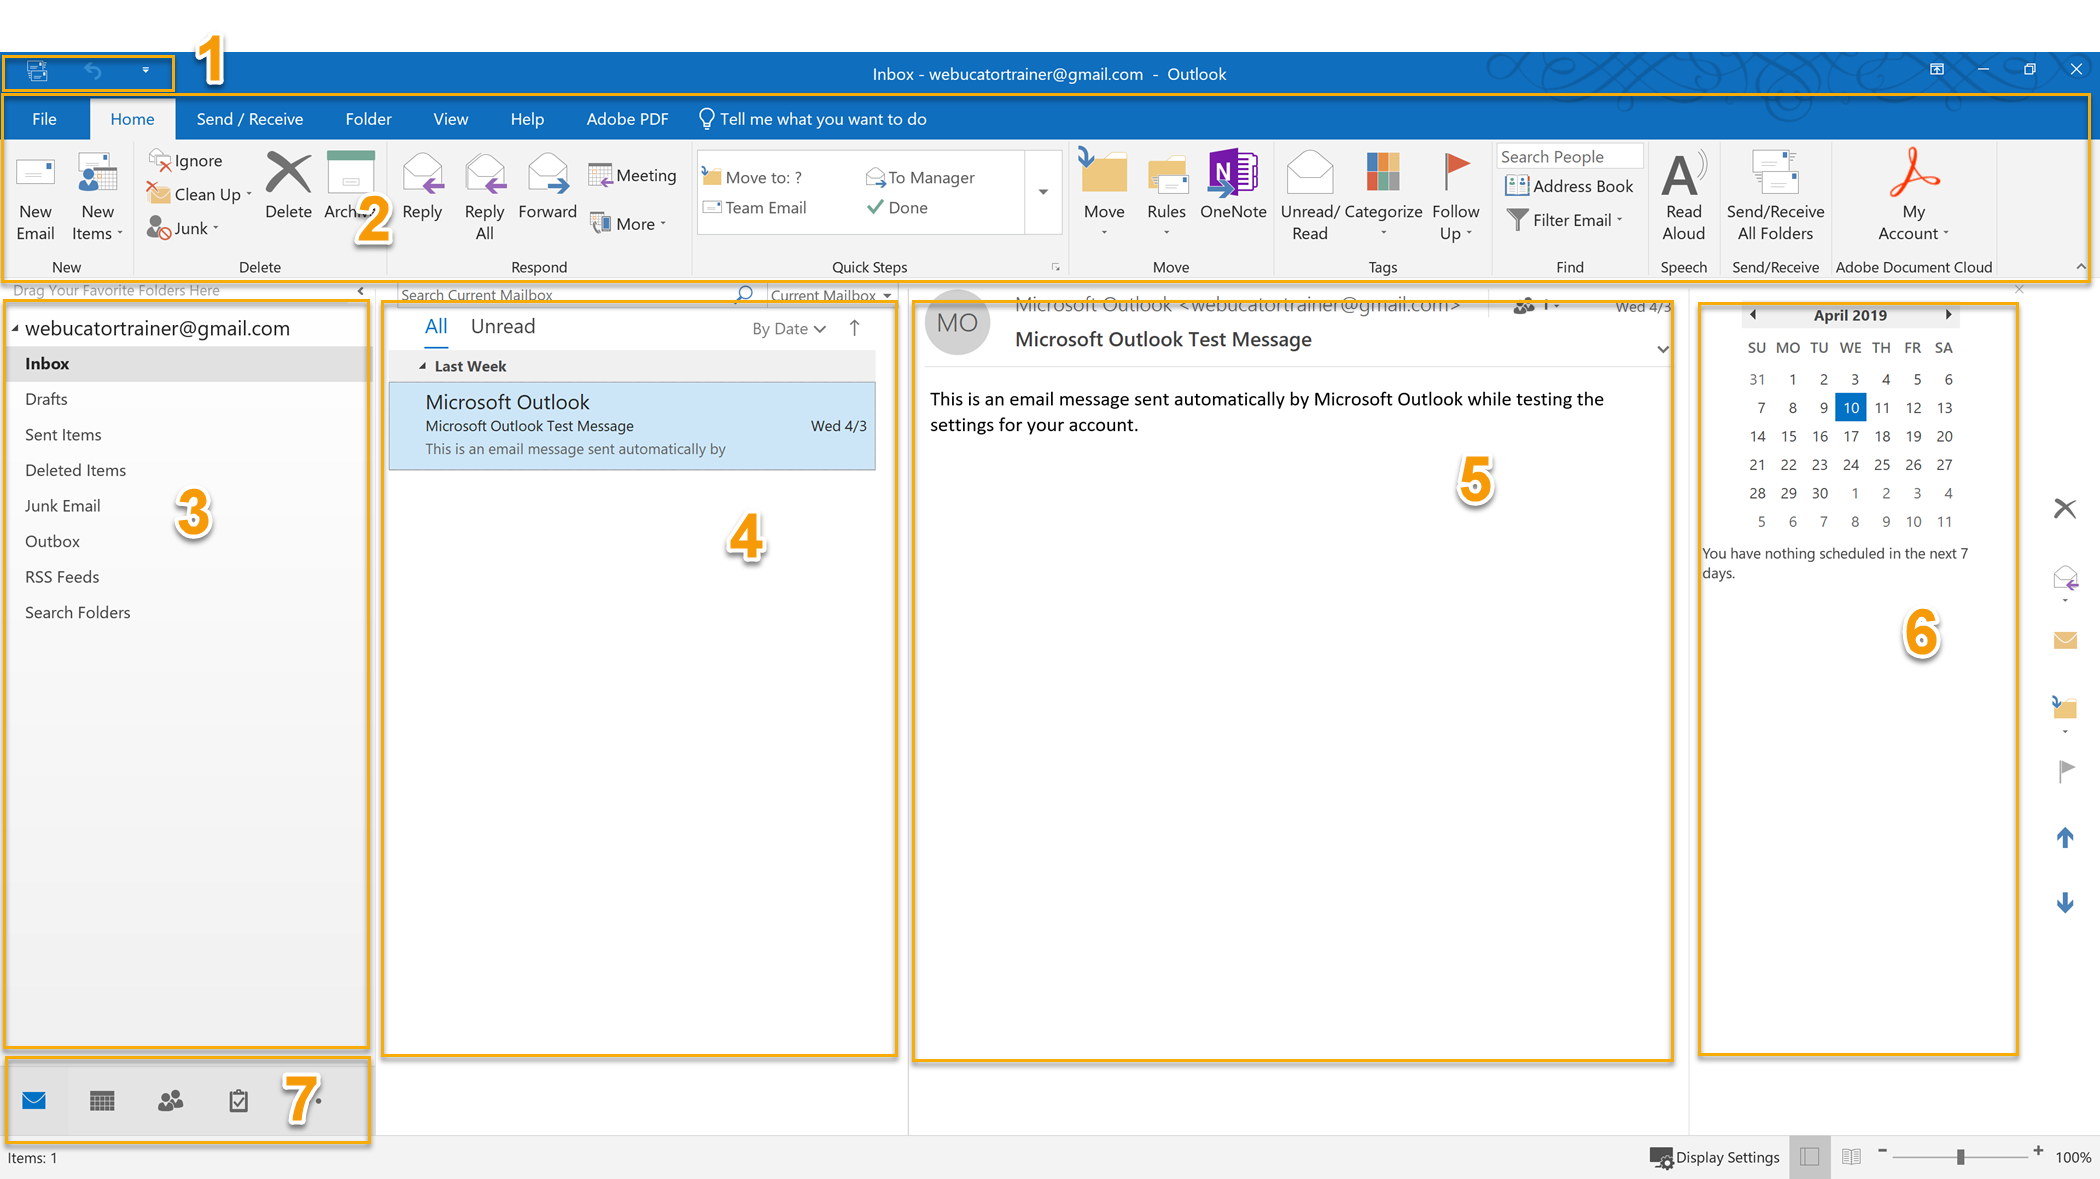 Tutorial: The Outlook 2019 Interface | Introduction to Microsoft